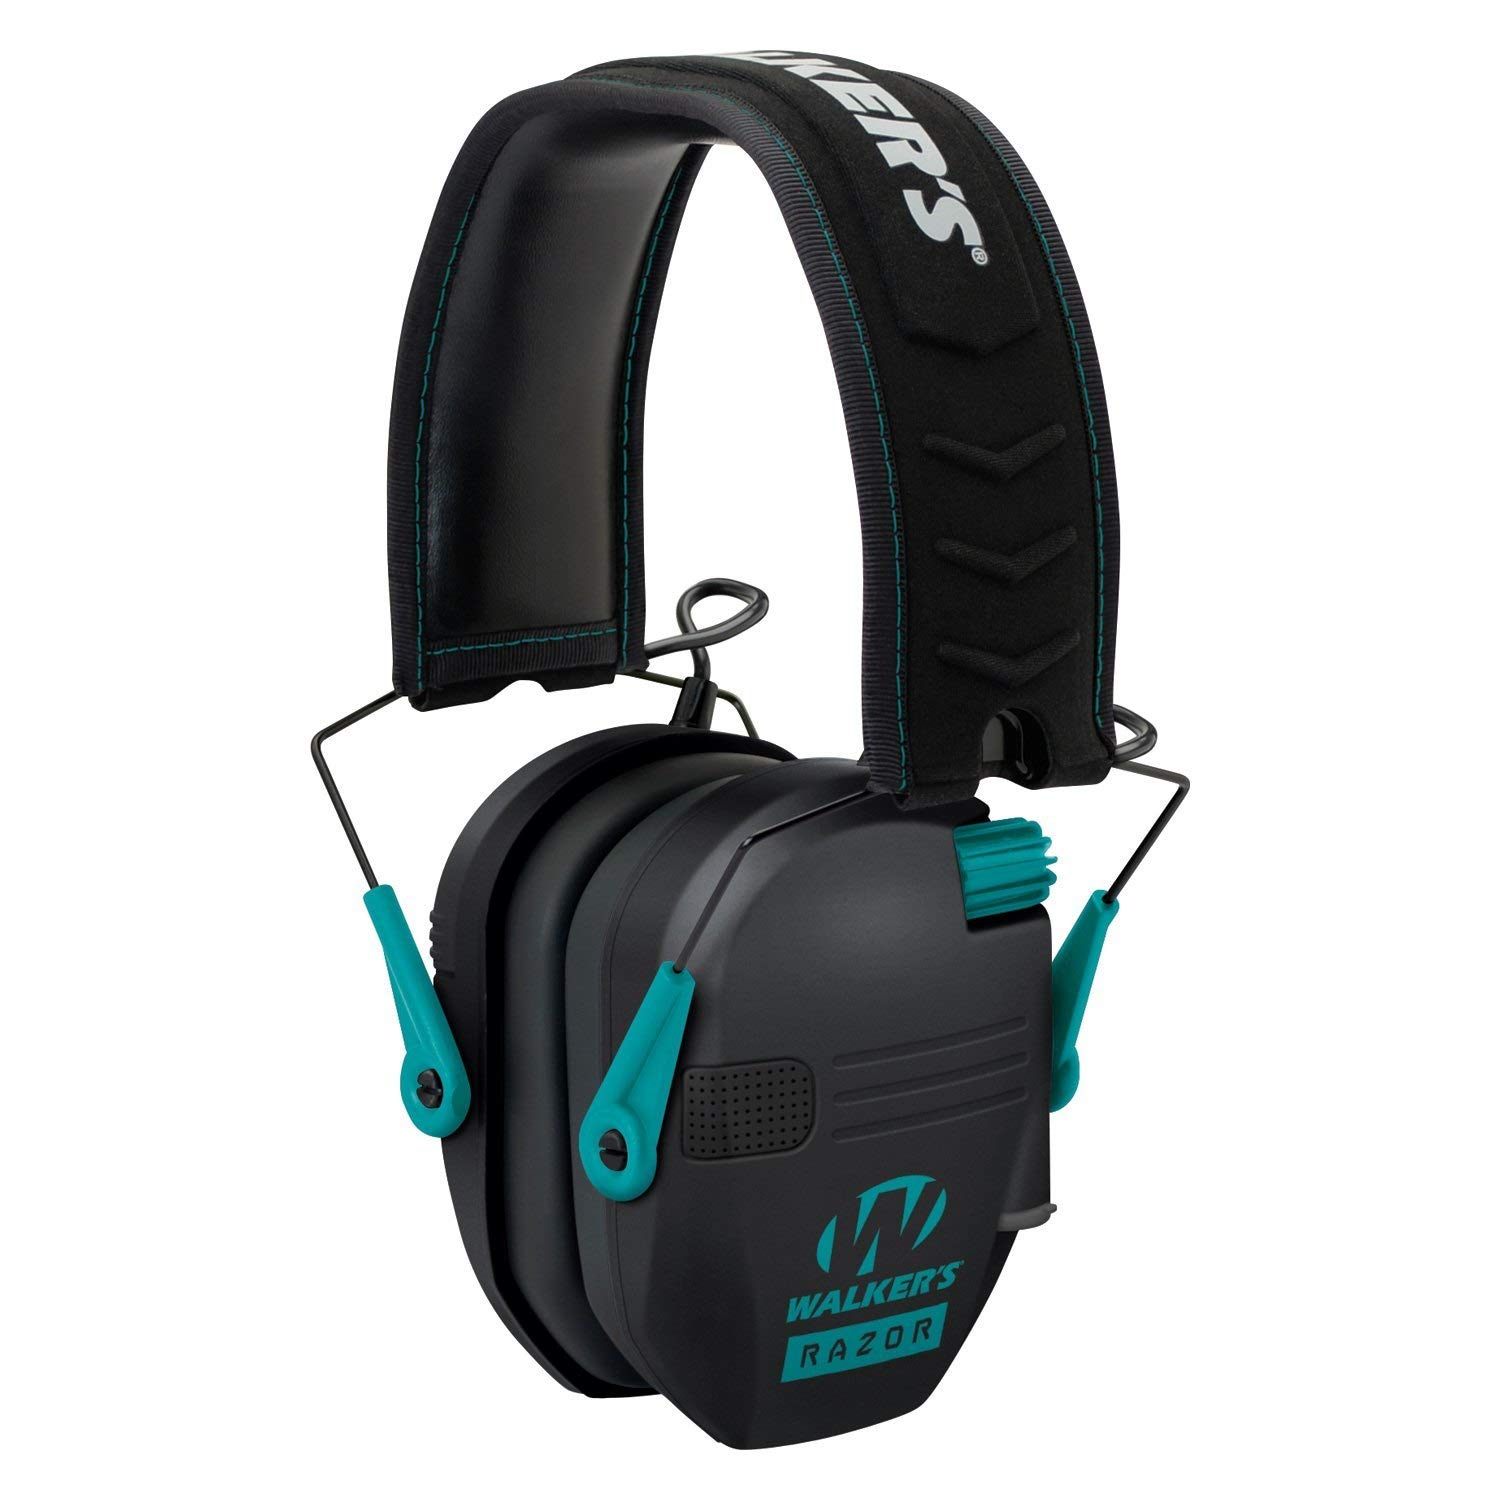 Walkers Razor Slim Electronic Shooting Hearing Protection Muff, Teal/Black (Sound Amplification and Suppression) with Shooting Glasses Kit by Walkers (Image #4)